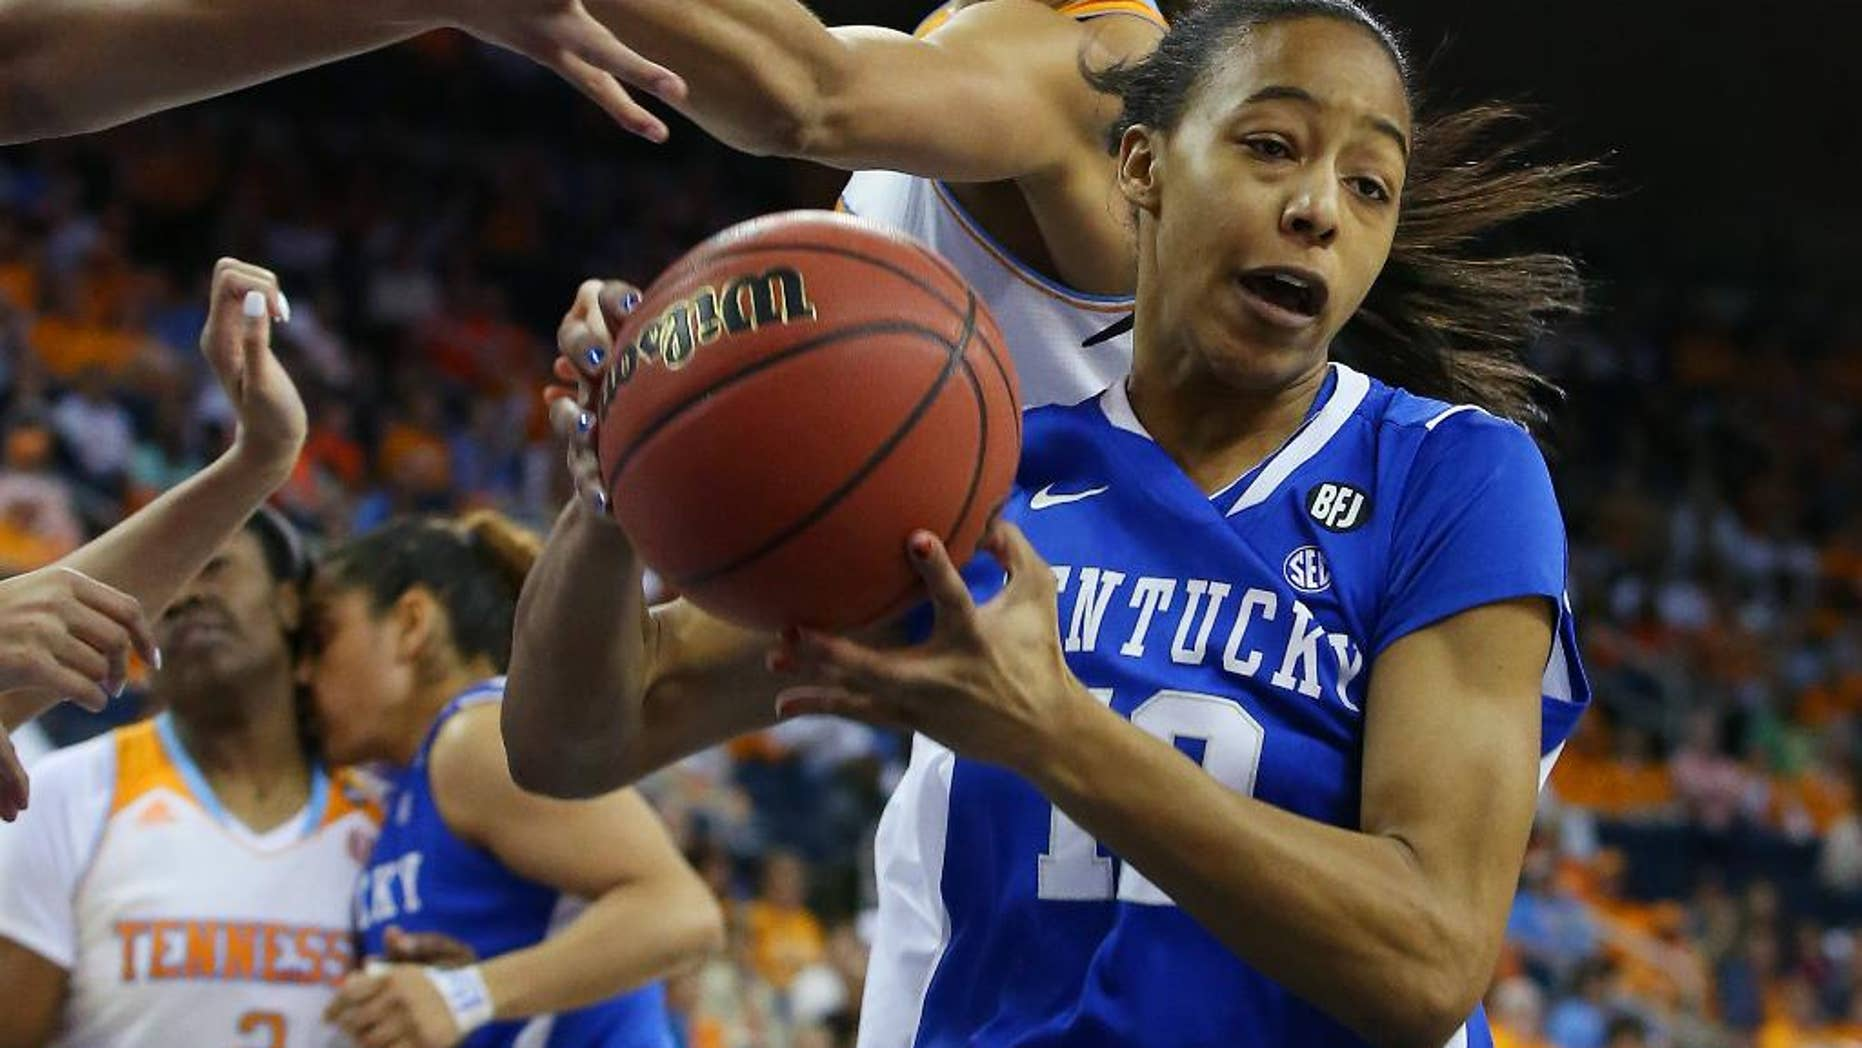 Kentucky forward/center Jelleah Sidney (12) rebounds in front of Tennessee center Isabelle Harrison, top, in the first half of an NCAA college basketball game in the finals of the Southeastern Conference women's tournament on Sunday, March 9, 2014, in Duluth, Ga. (AP Photo/Jason Getz)